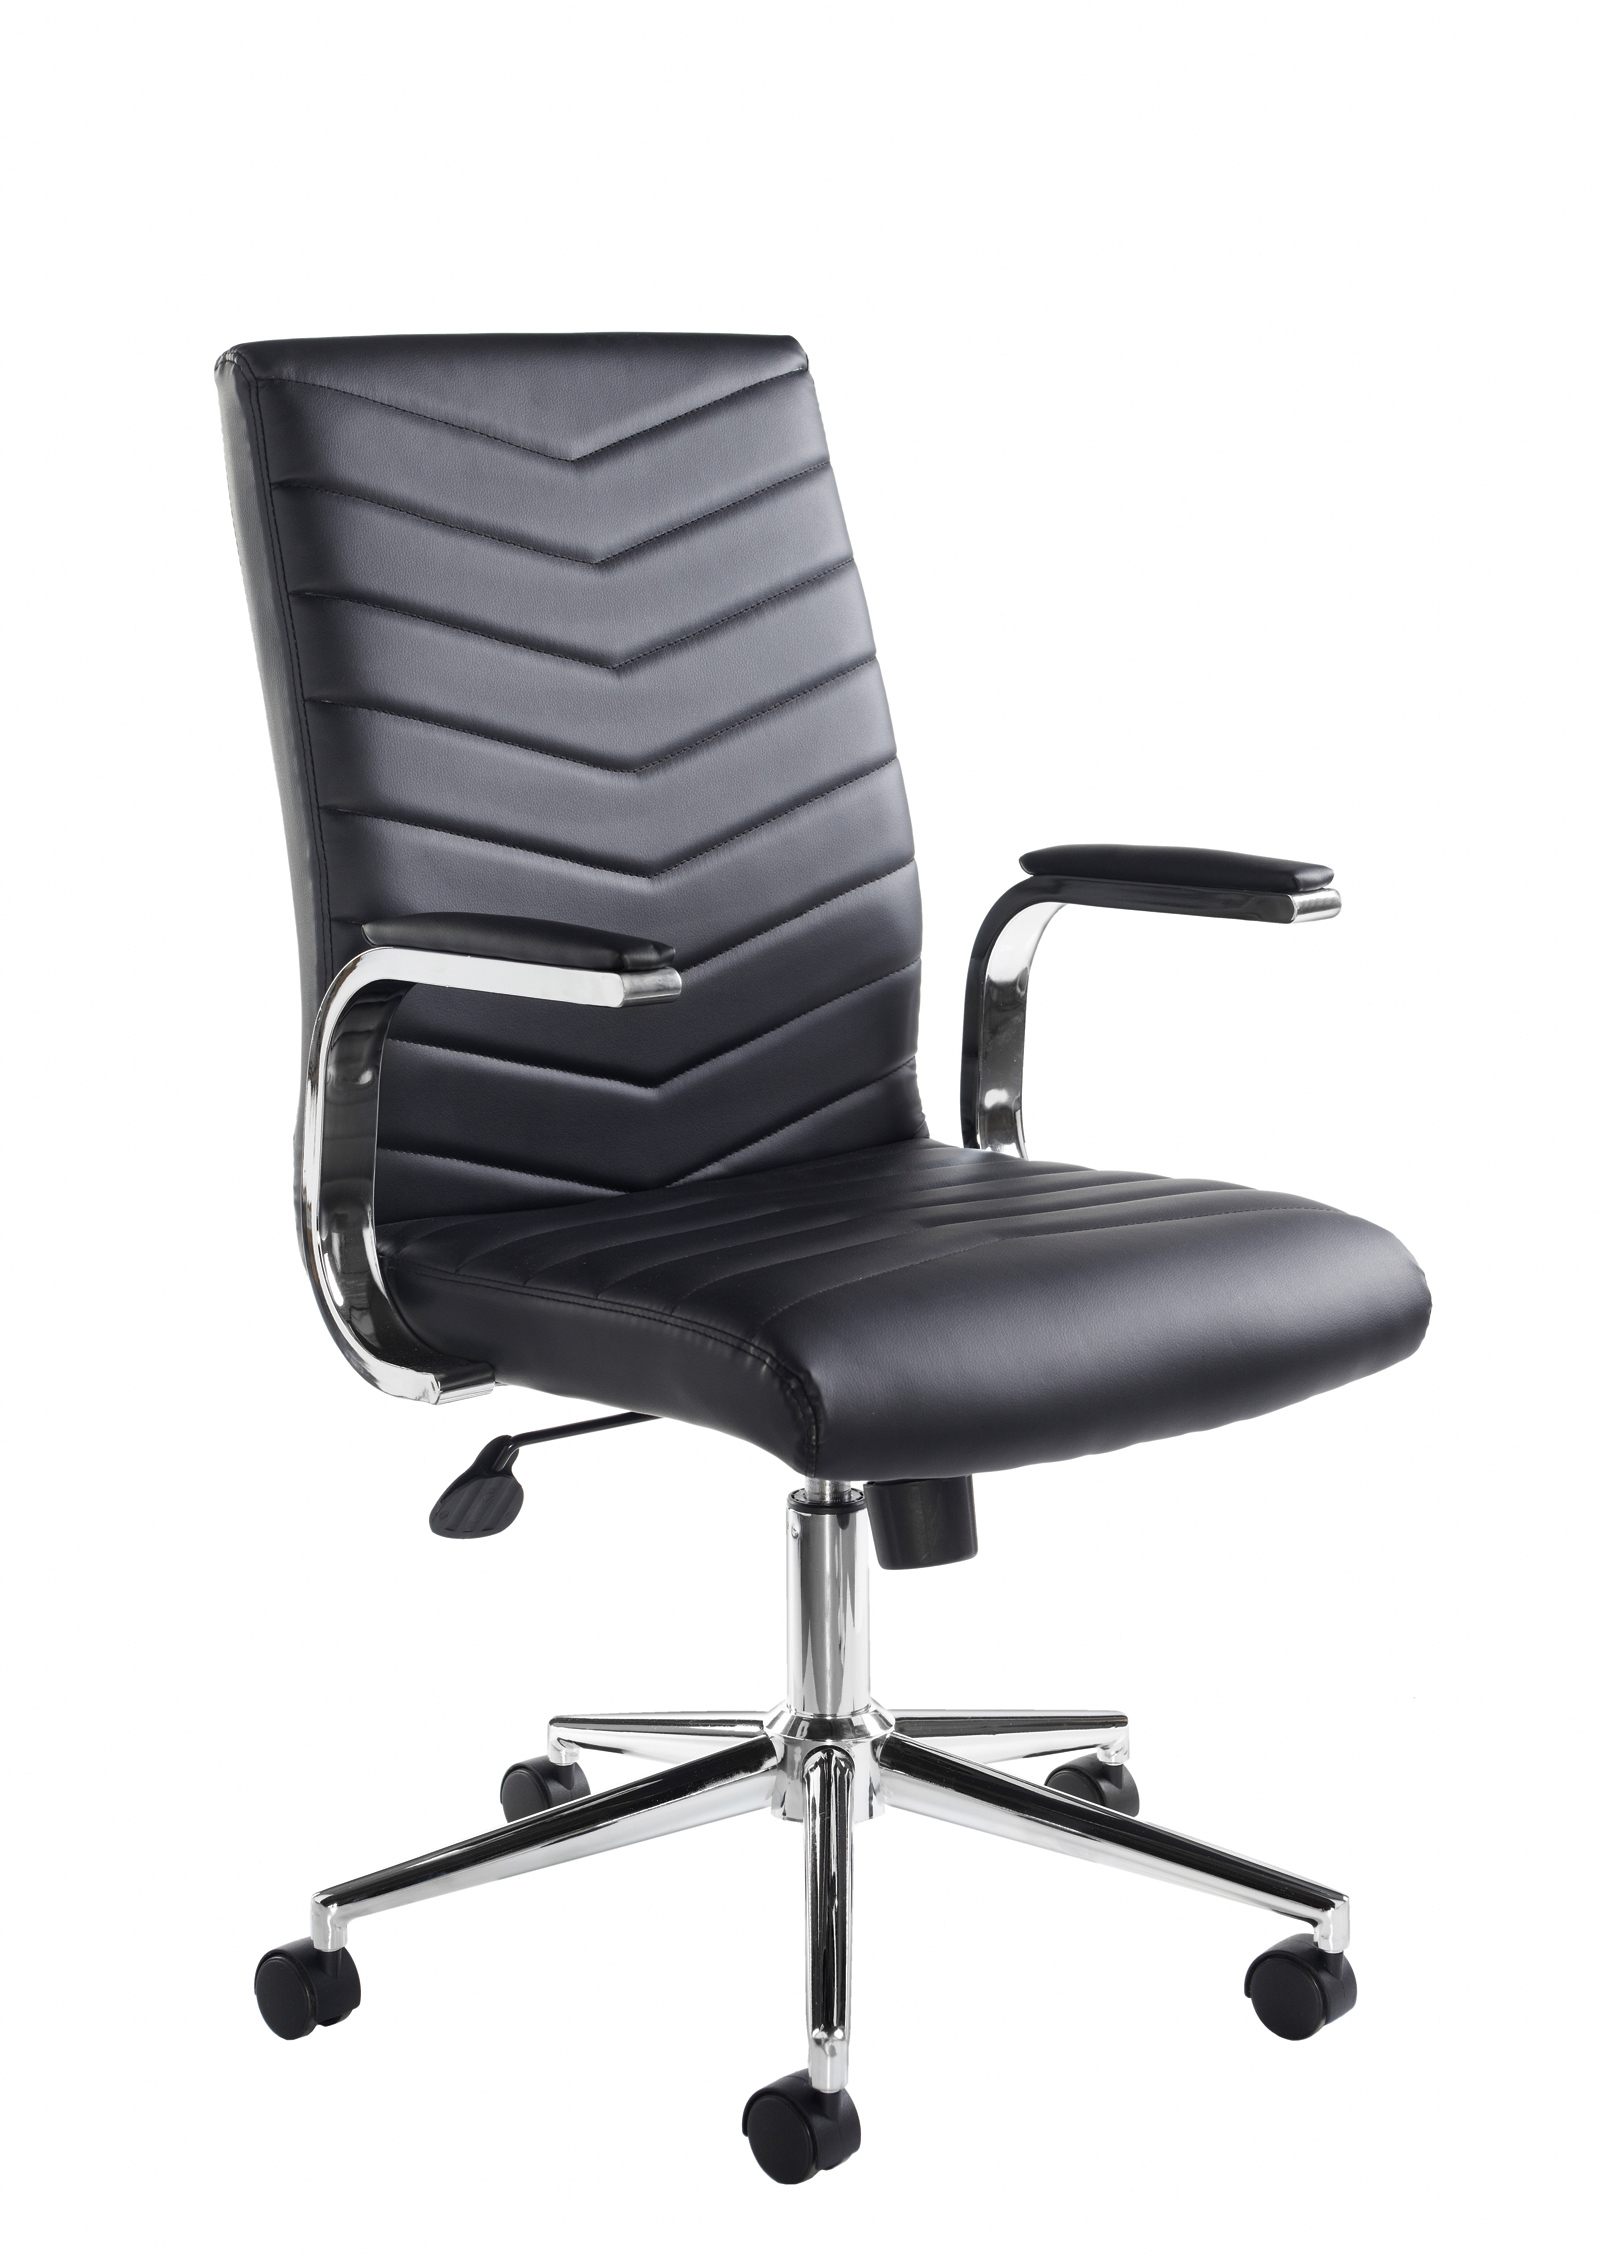 Martinez high back managers chair